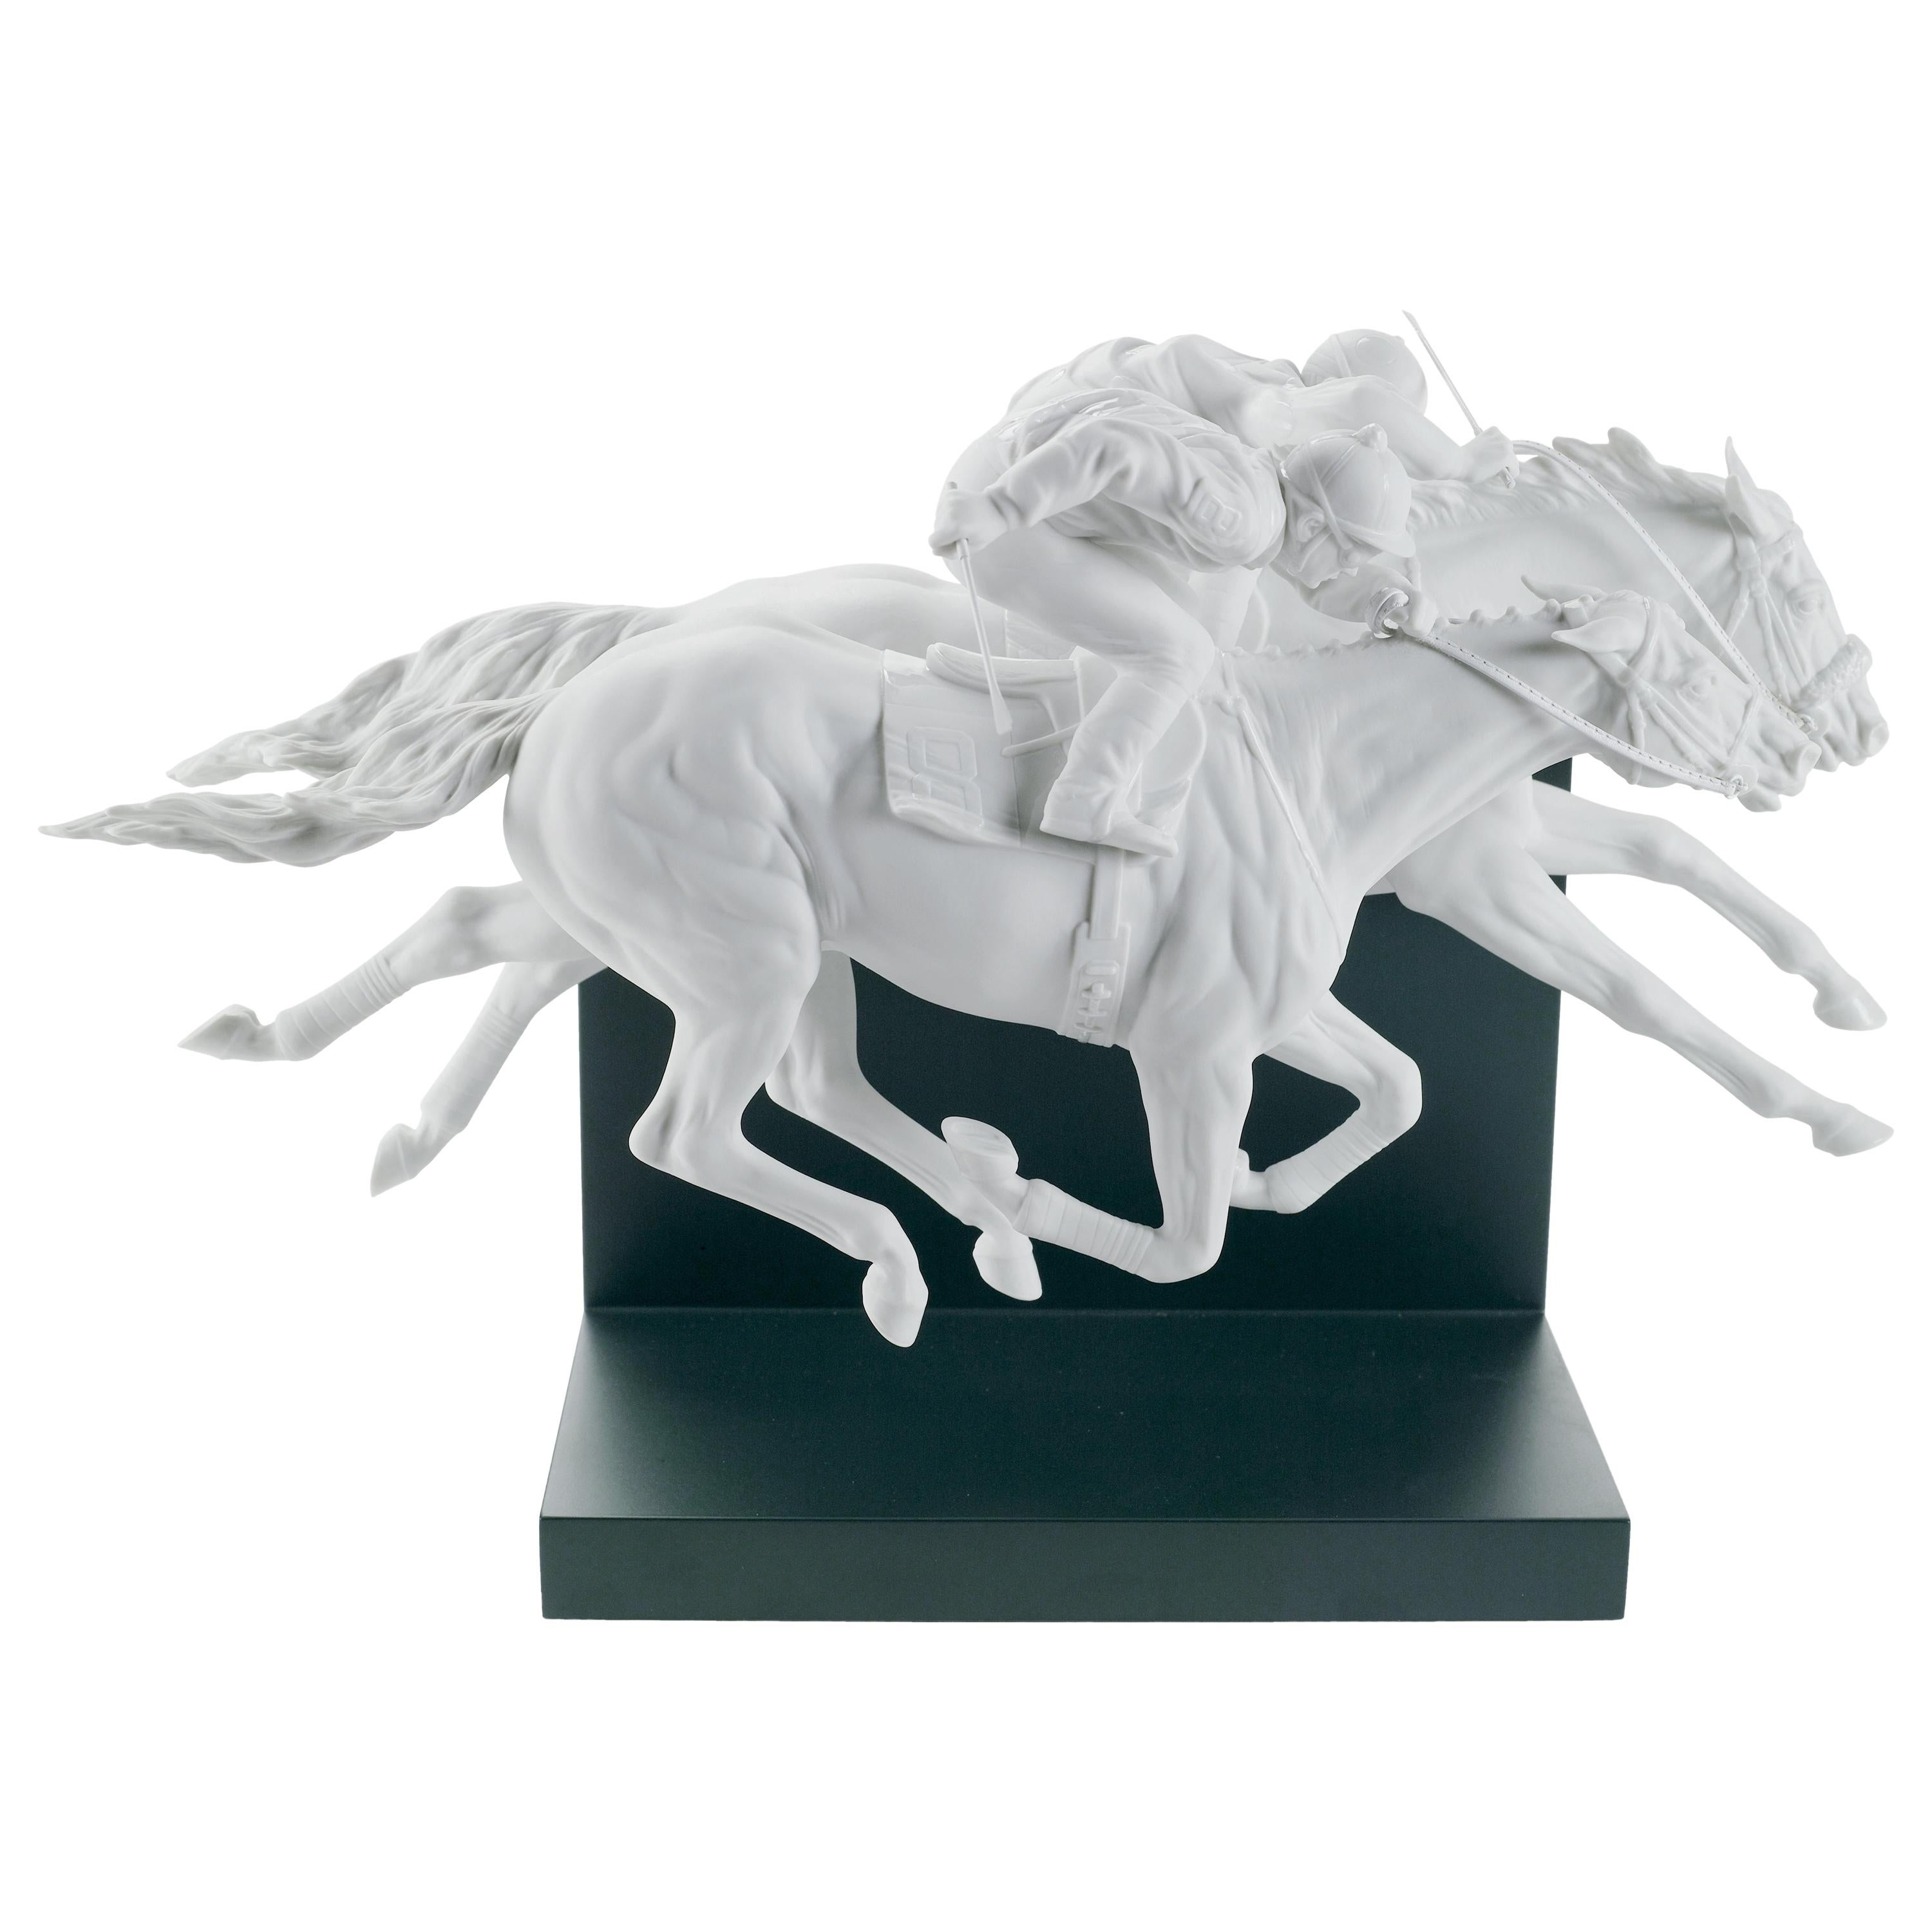 Lladro Horse Race Figurine in White by Ernest Massuet. Limited Edition.